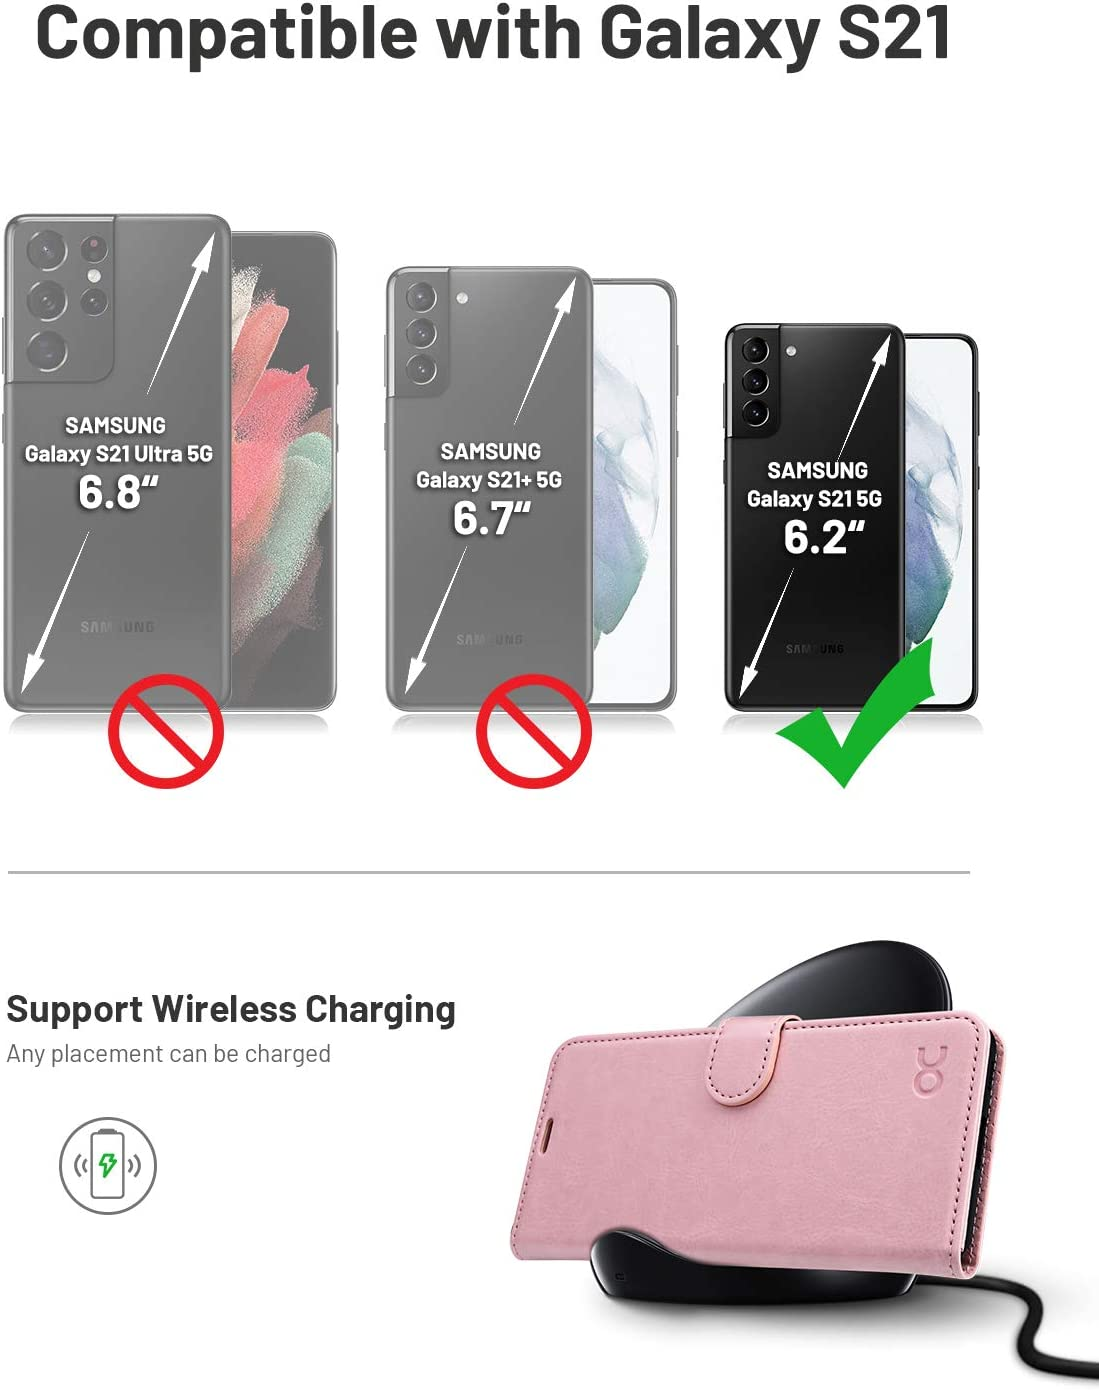 Phone Cover 6.2 Inch OCASE Compatible with Galaxy S21 5G Wallet Case 2021 - Black PU Leather Flip Folio Case with Card Holders RFID Blocking Kickstand Shockproof TPU Inner Shell